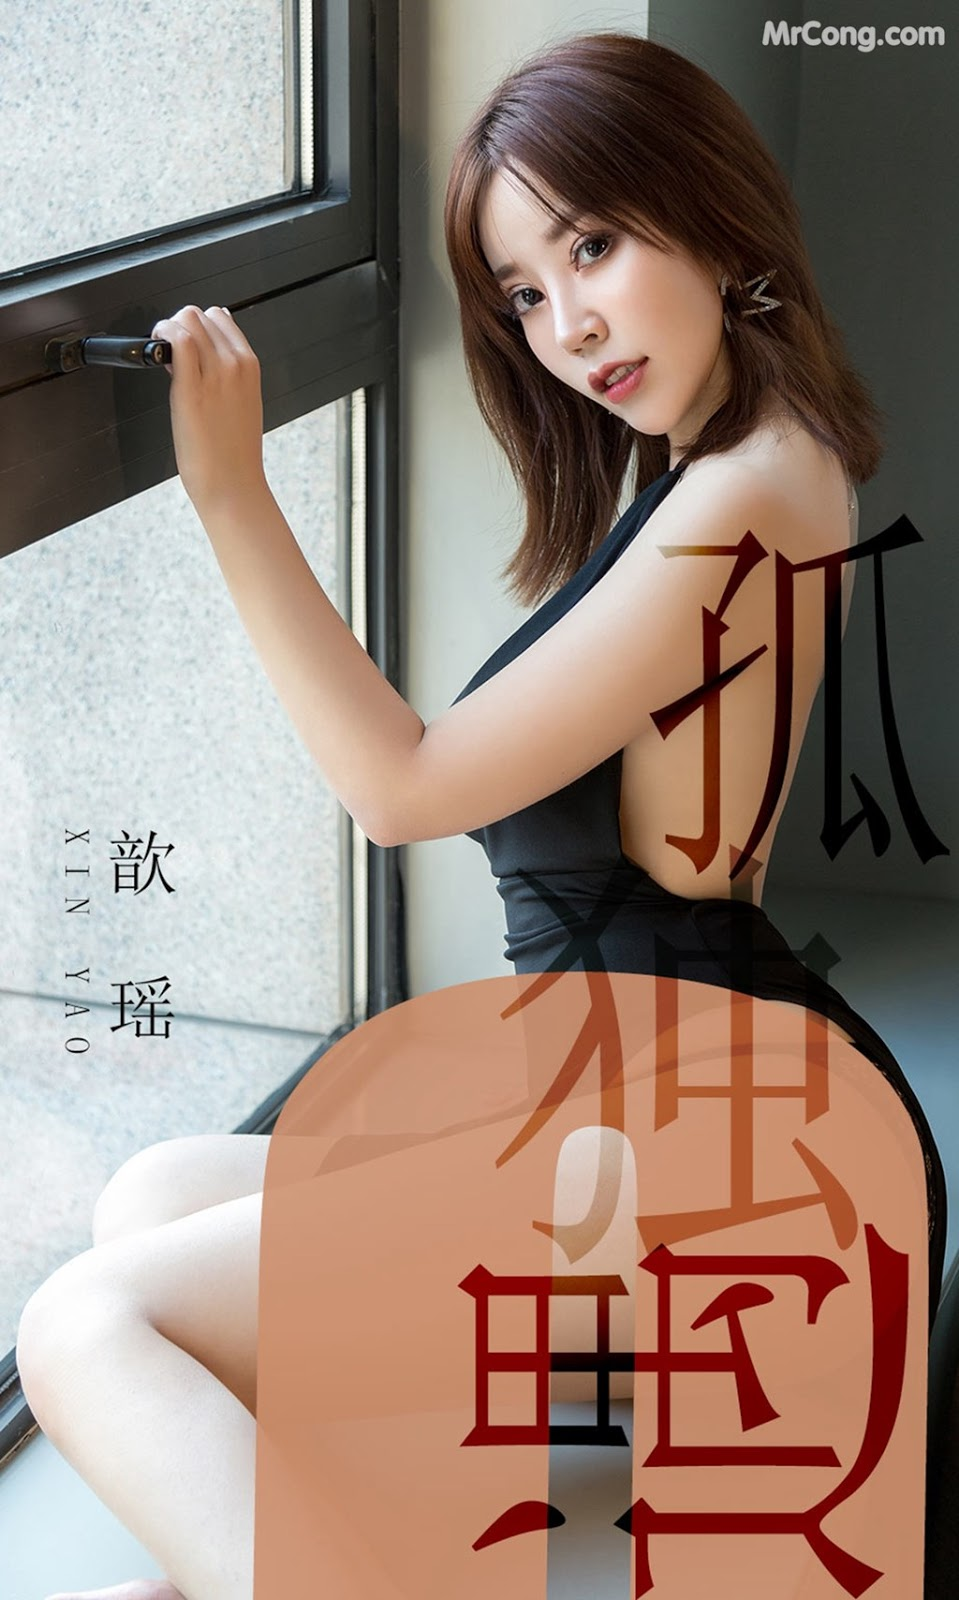 UGIRLS - Ai You Wu App No.1476: 歆 瑶 (35 pictures)